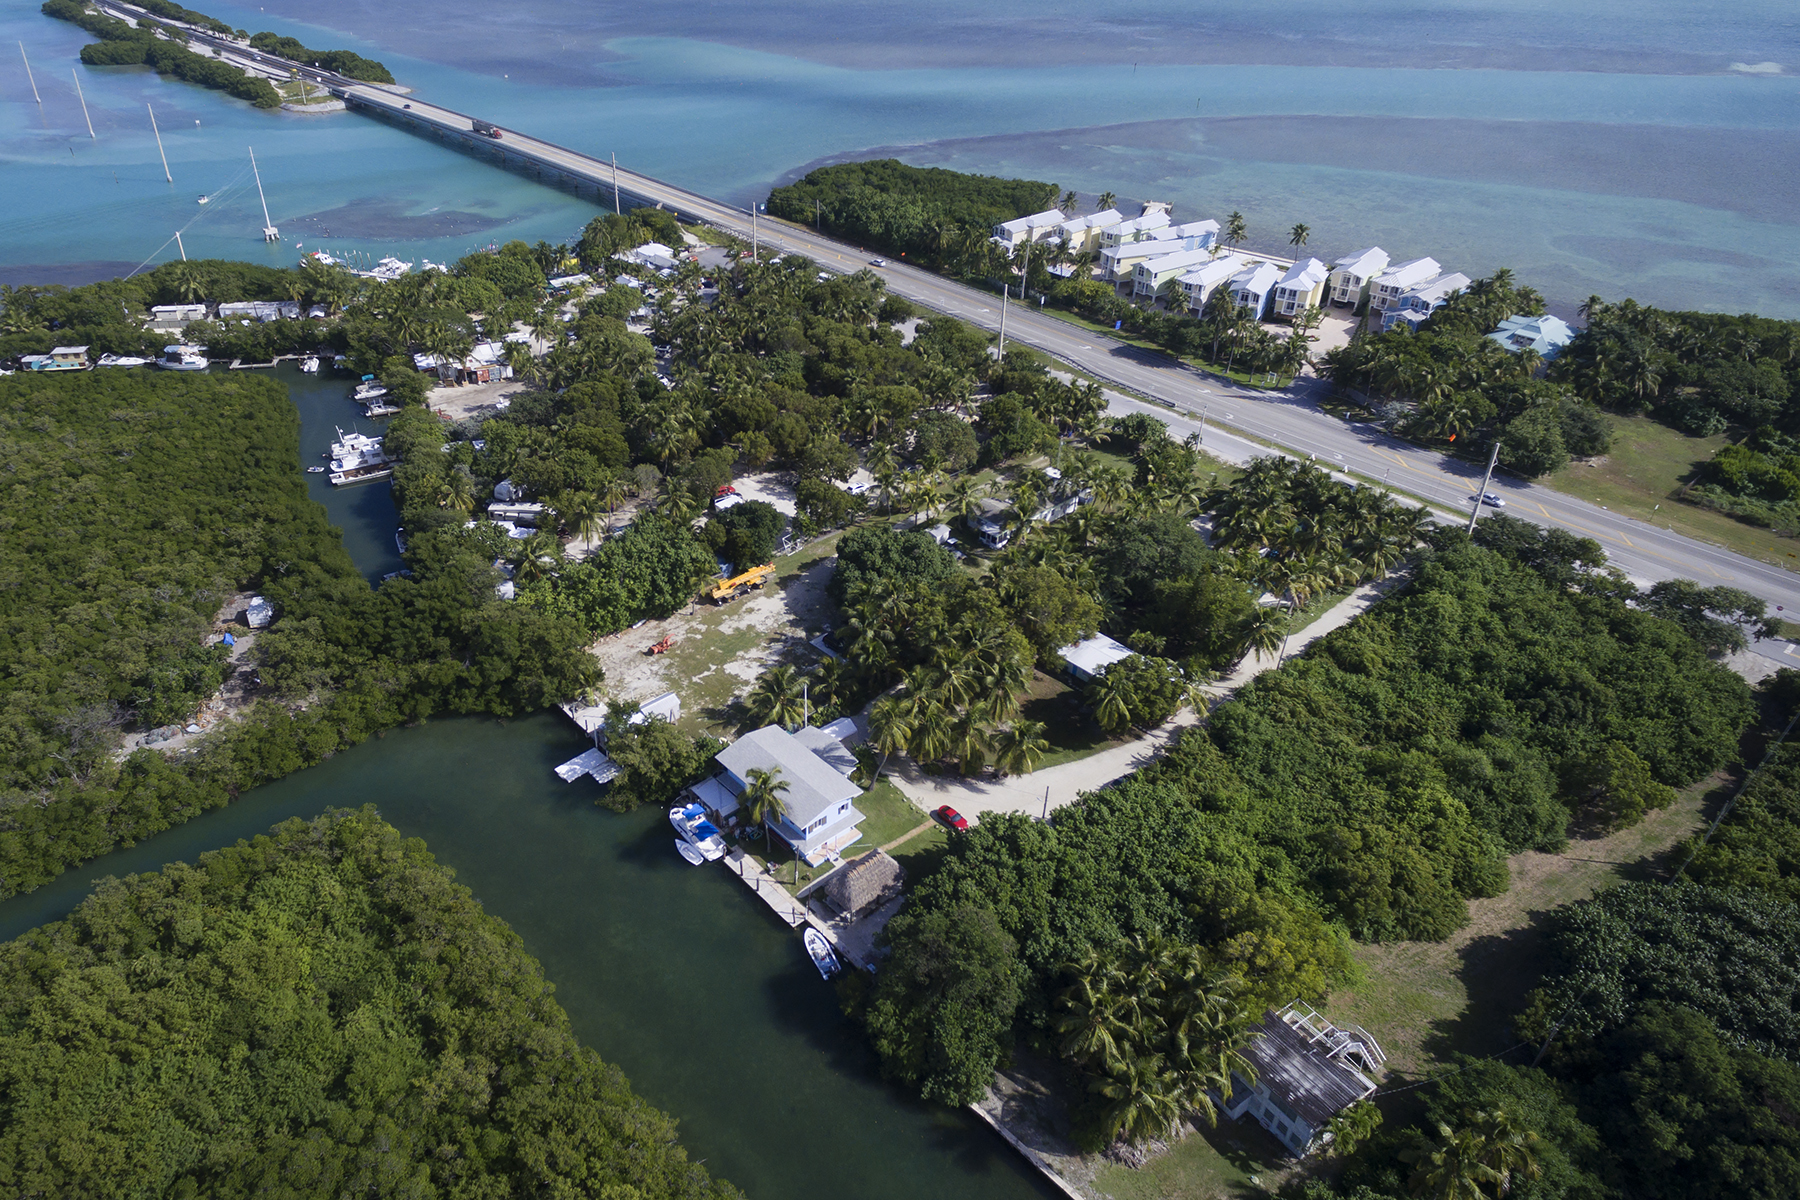 Casa Multifamiliar por un Venta en Exclusive Waterfront Location 77360 Overseas Highway Florida Keys, Islamorada, Florida, 33036 Estados Unidos